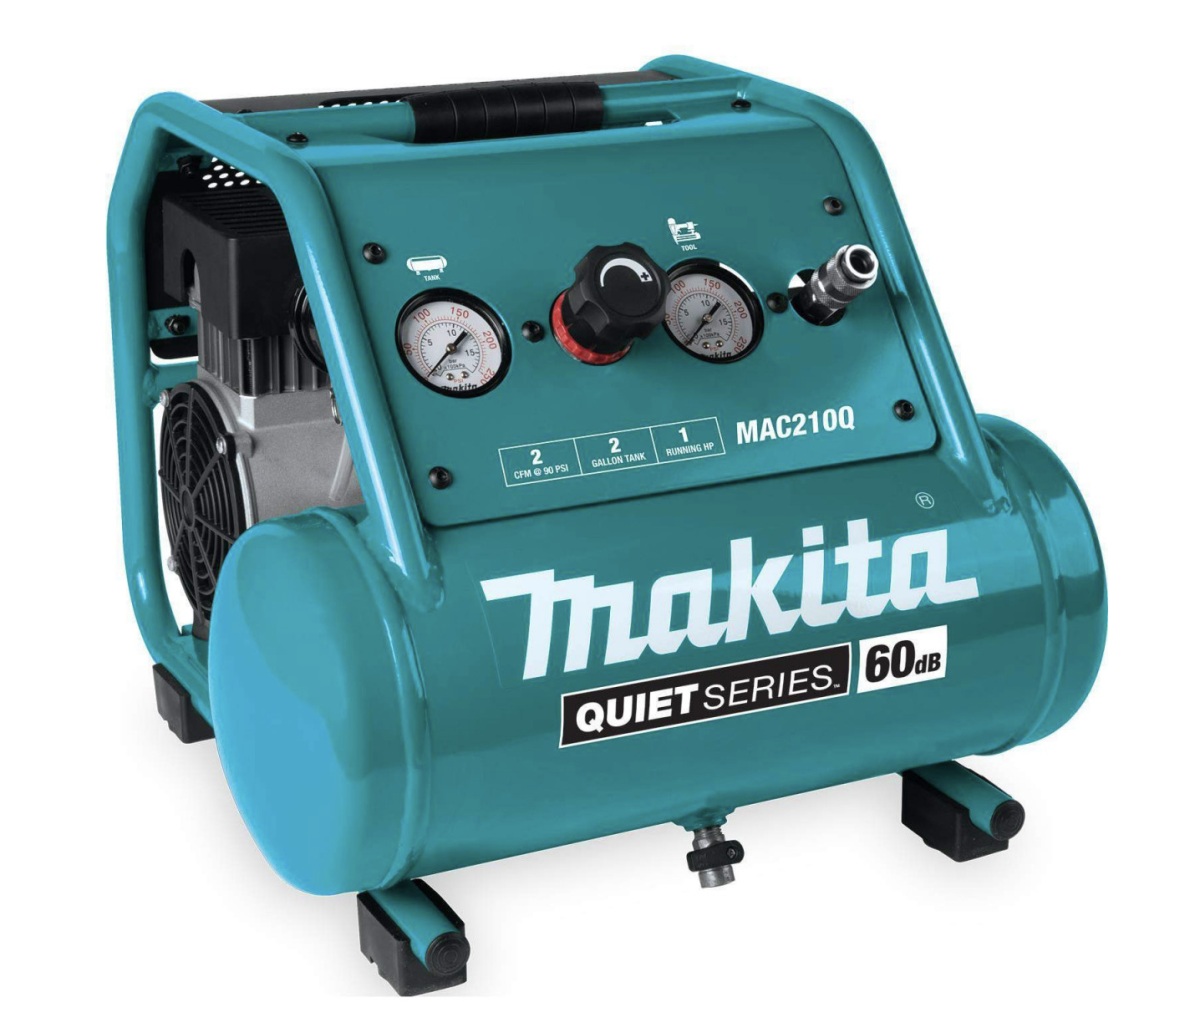 Pin by carroll on Design shop in 2020 Makita, Electric